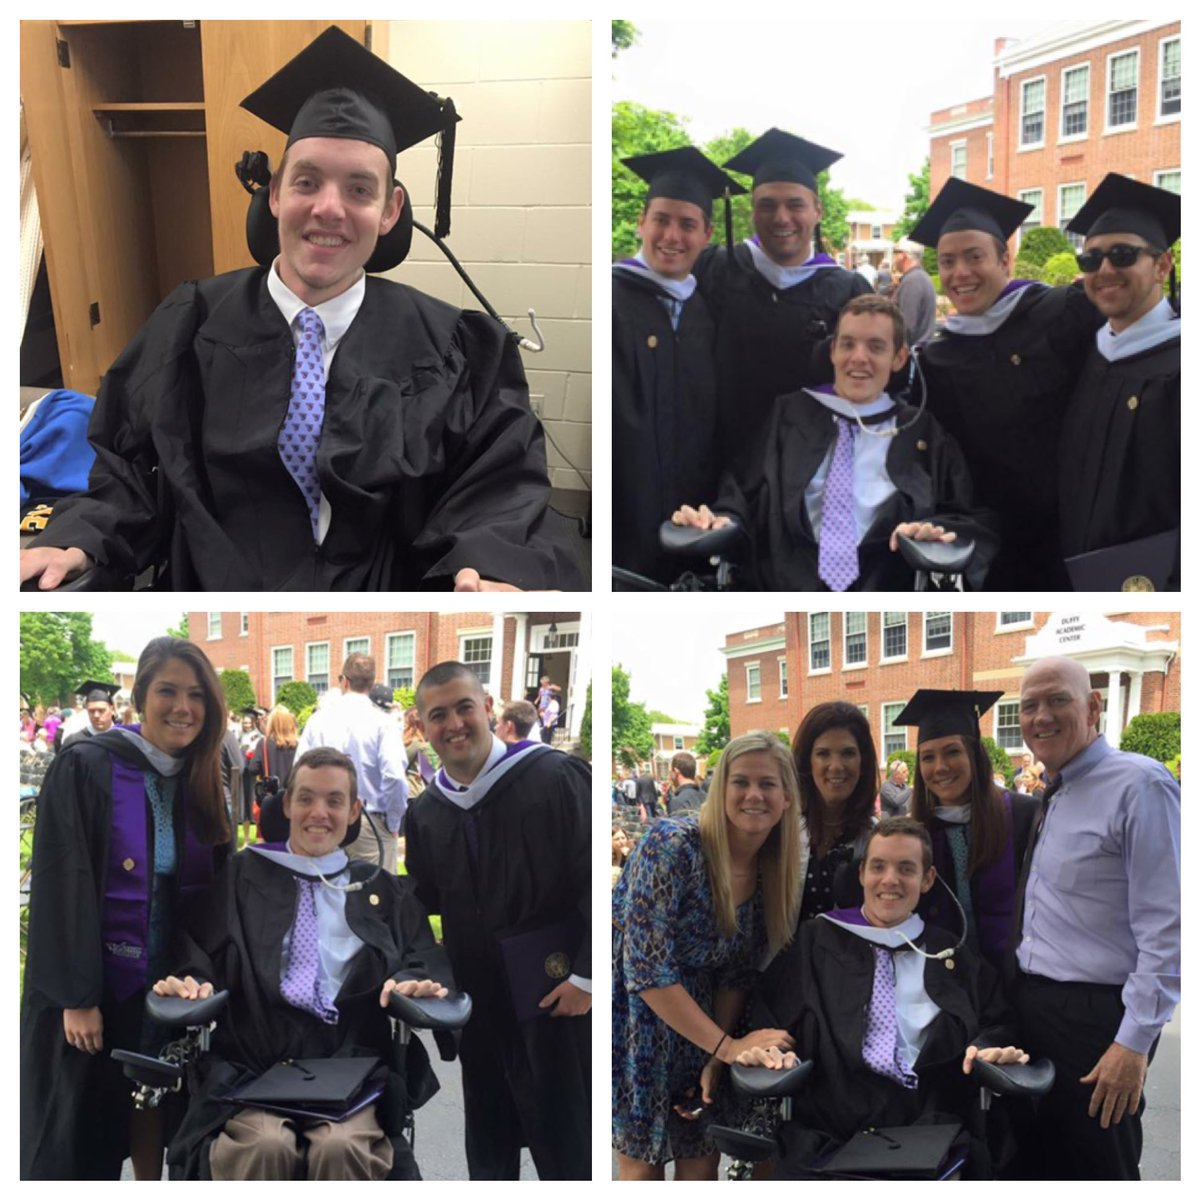 Congrats to Norwood's Matt Brown, who after being paralyzed playing hockey 6 years ago, graduated from Stonehill! https://t.co/hO075TgIEs